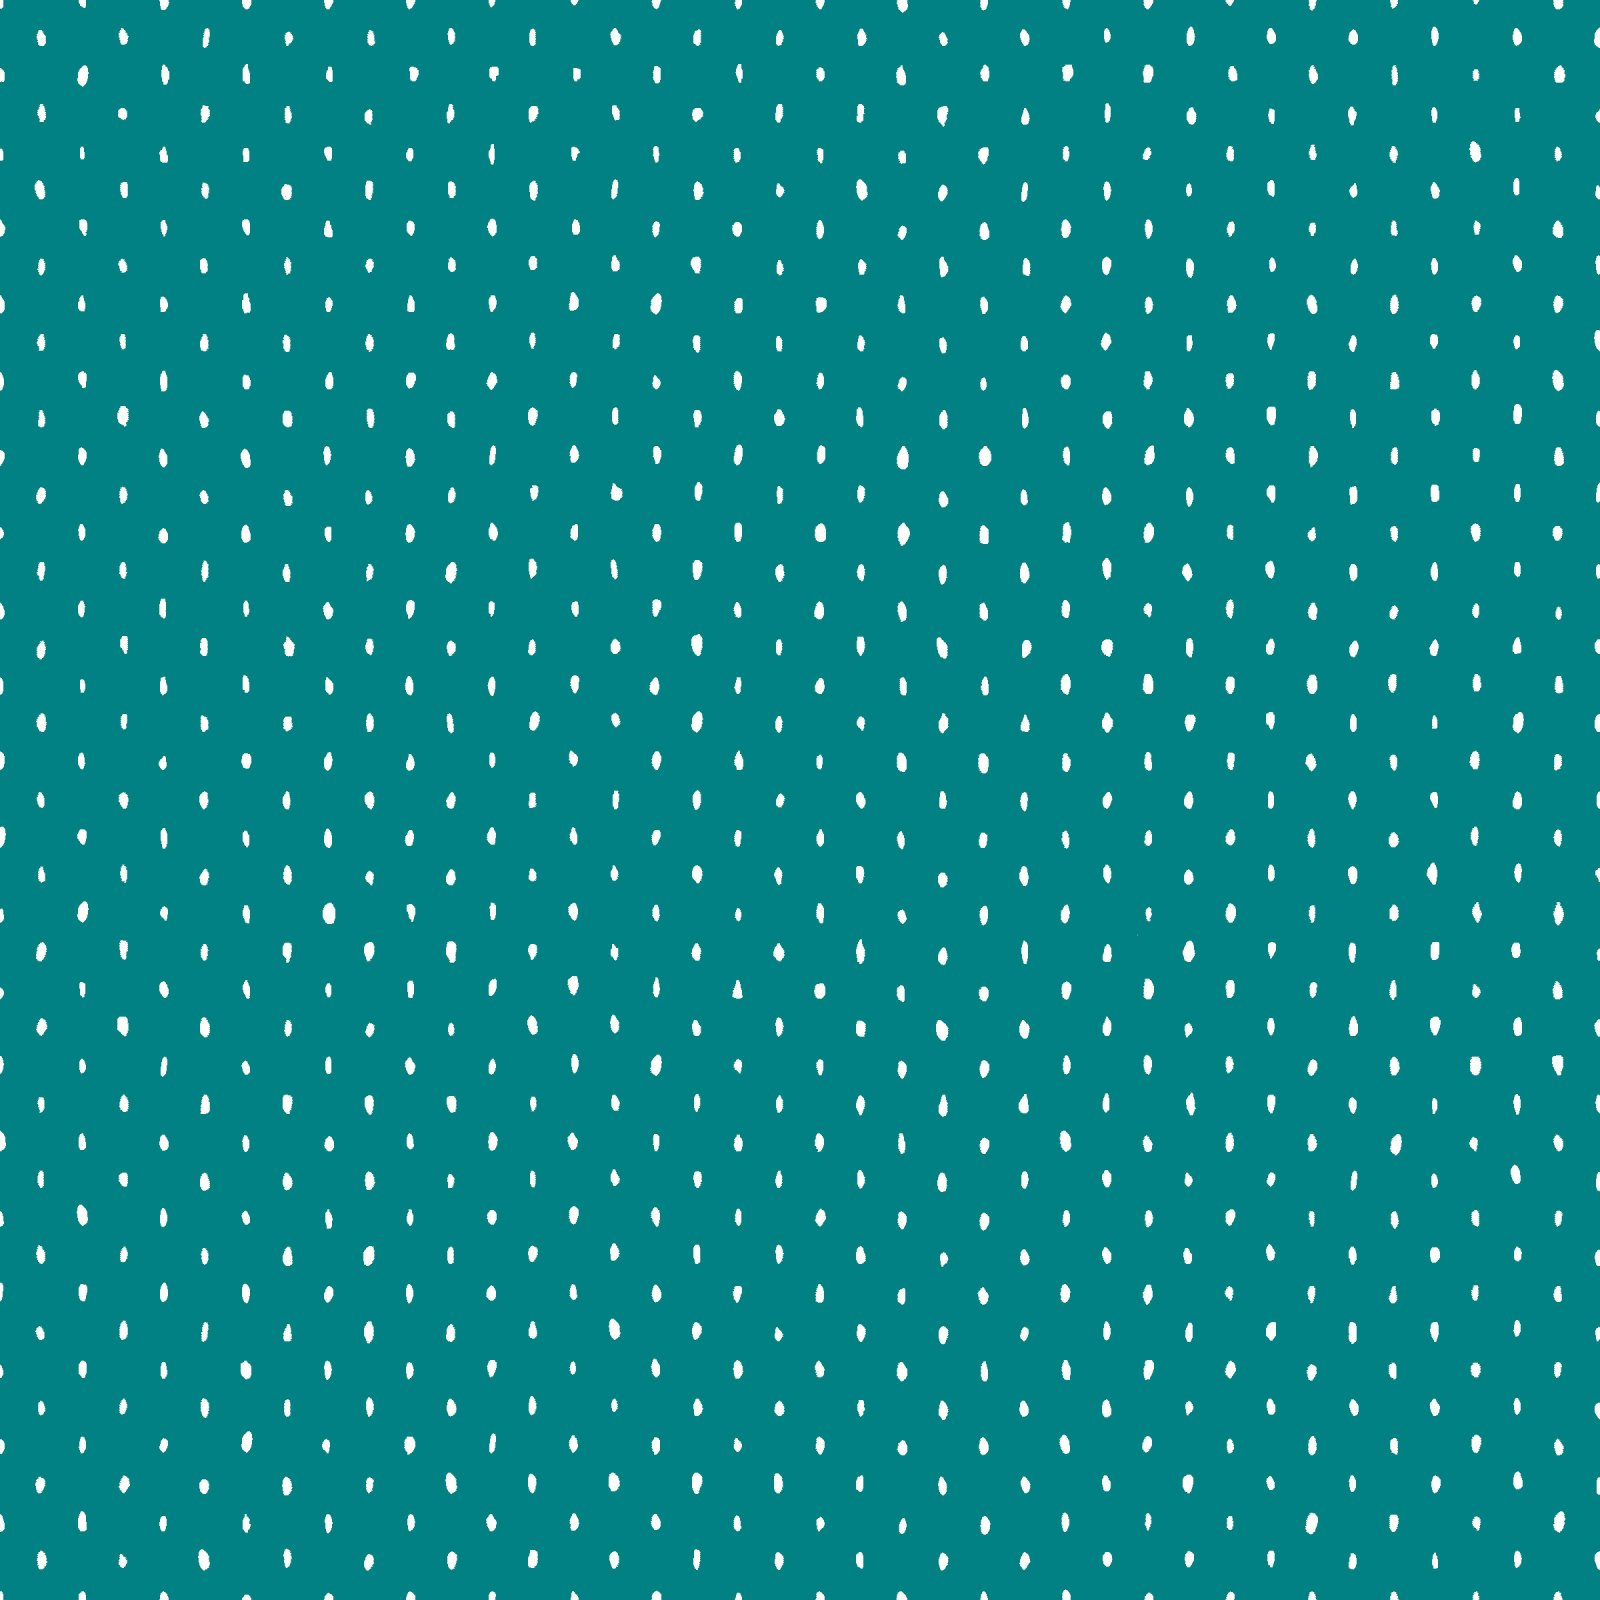 CS101-TE7_stitch_and_repeat_teal